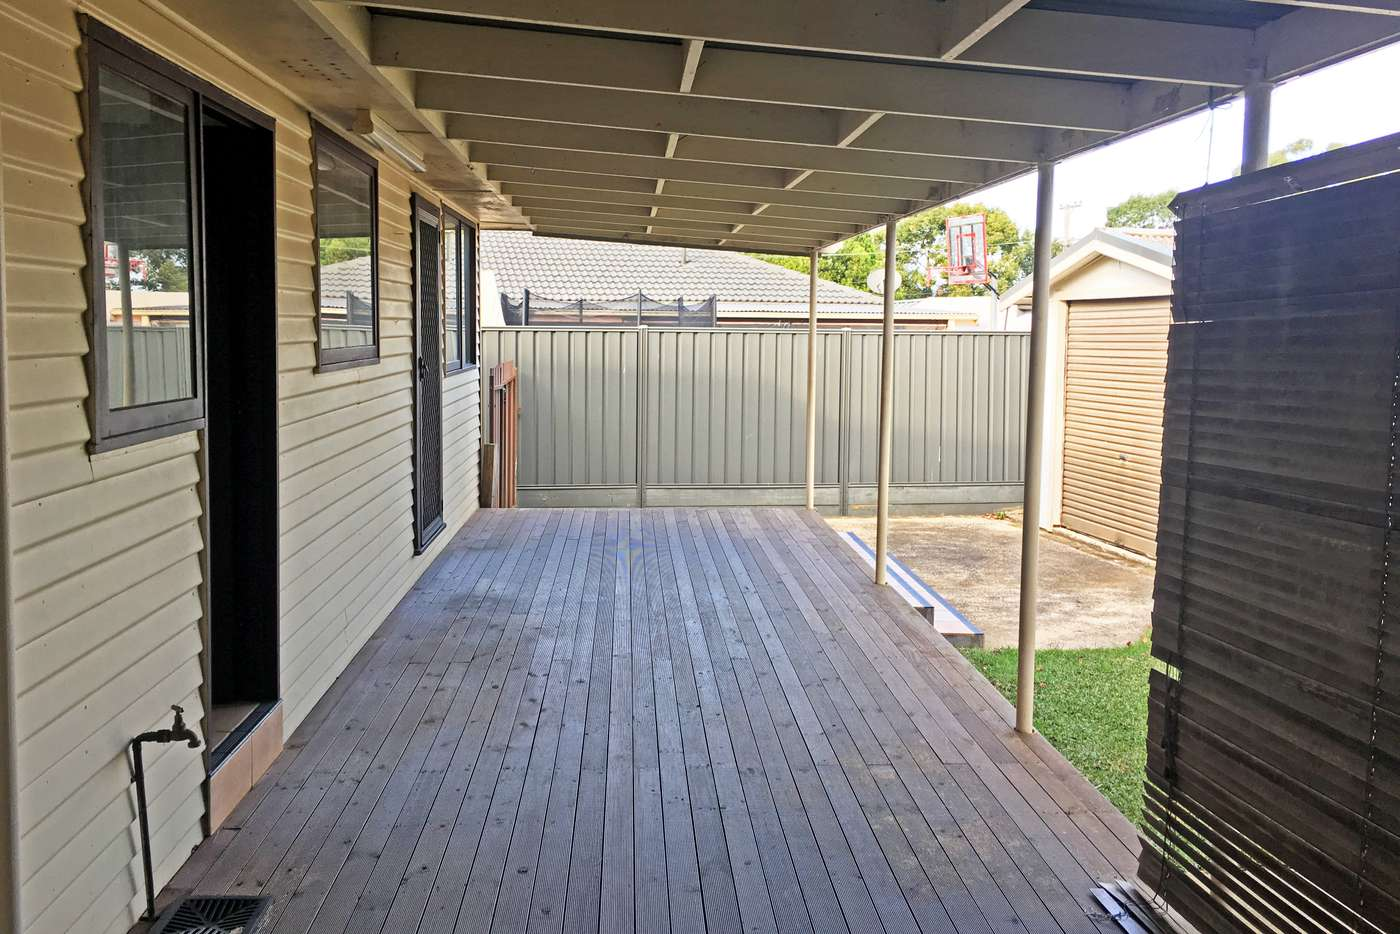 Seventh view of Homely house listing, 42 Monaro St, Seven Hills NSW 2147